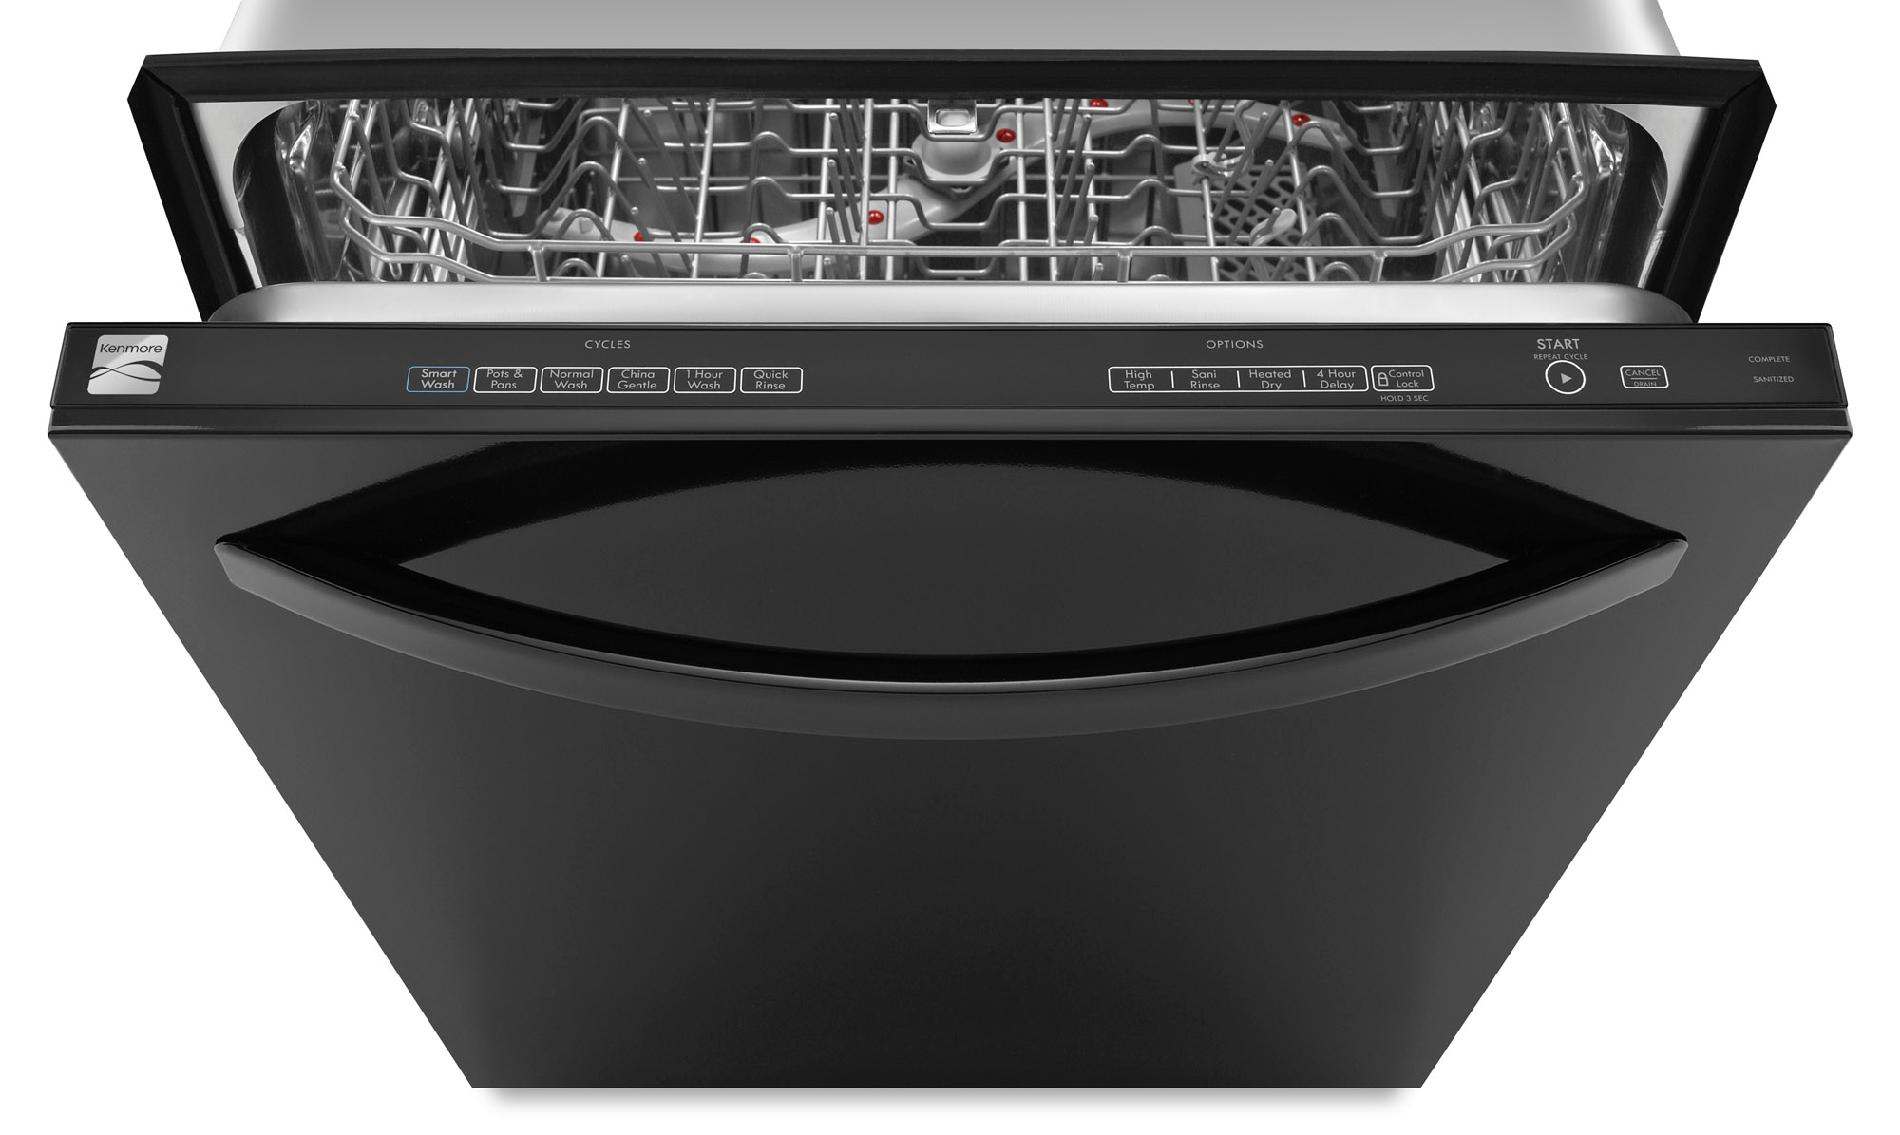 "Kenmore 24"" Built-In Dishwasher w/ Stainless Steel Tub - Black"